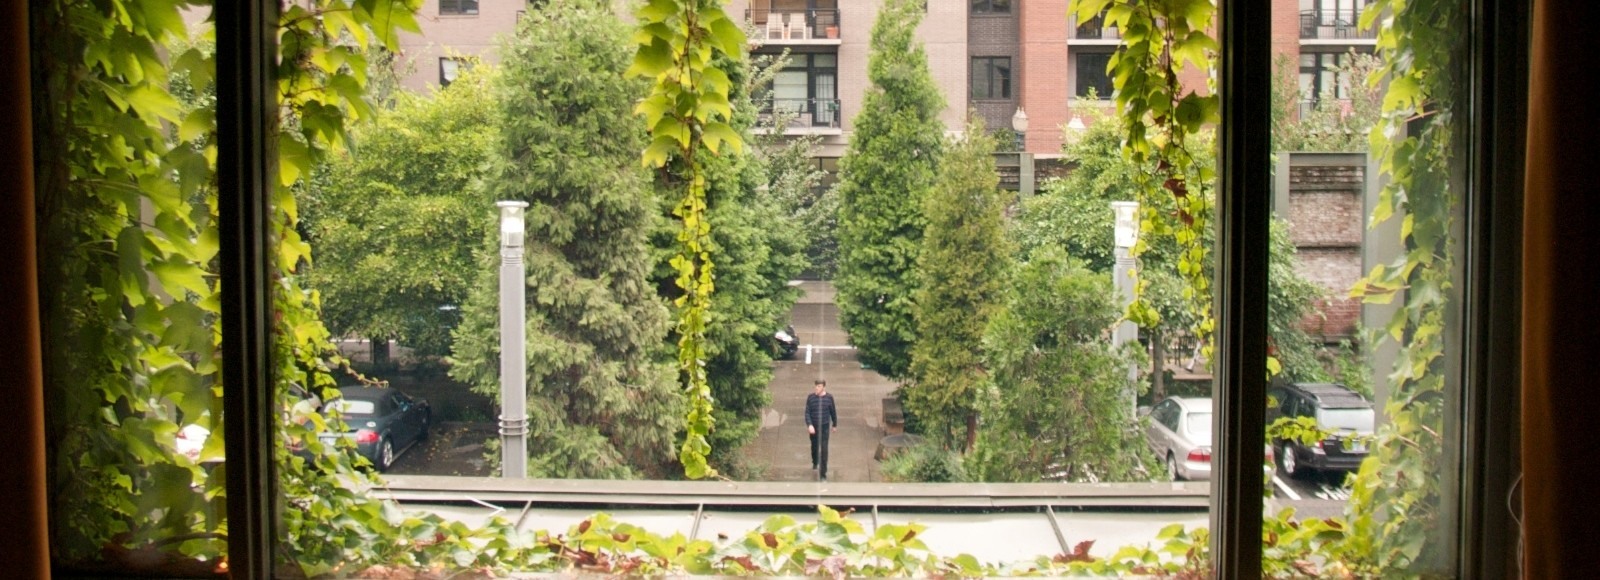 View through window of a person walking toward Natural Capital Center surrounded by green foliage